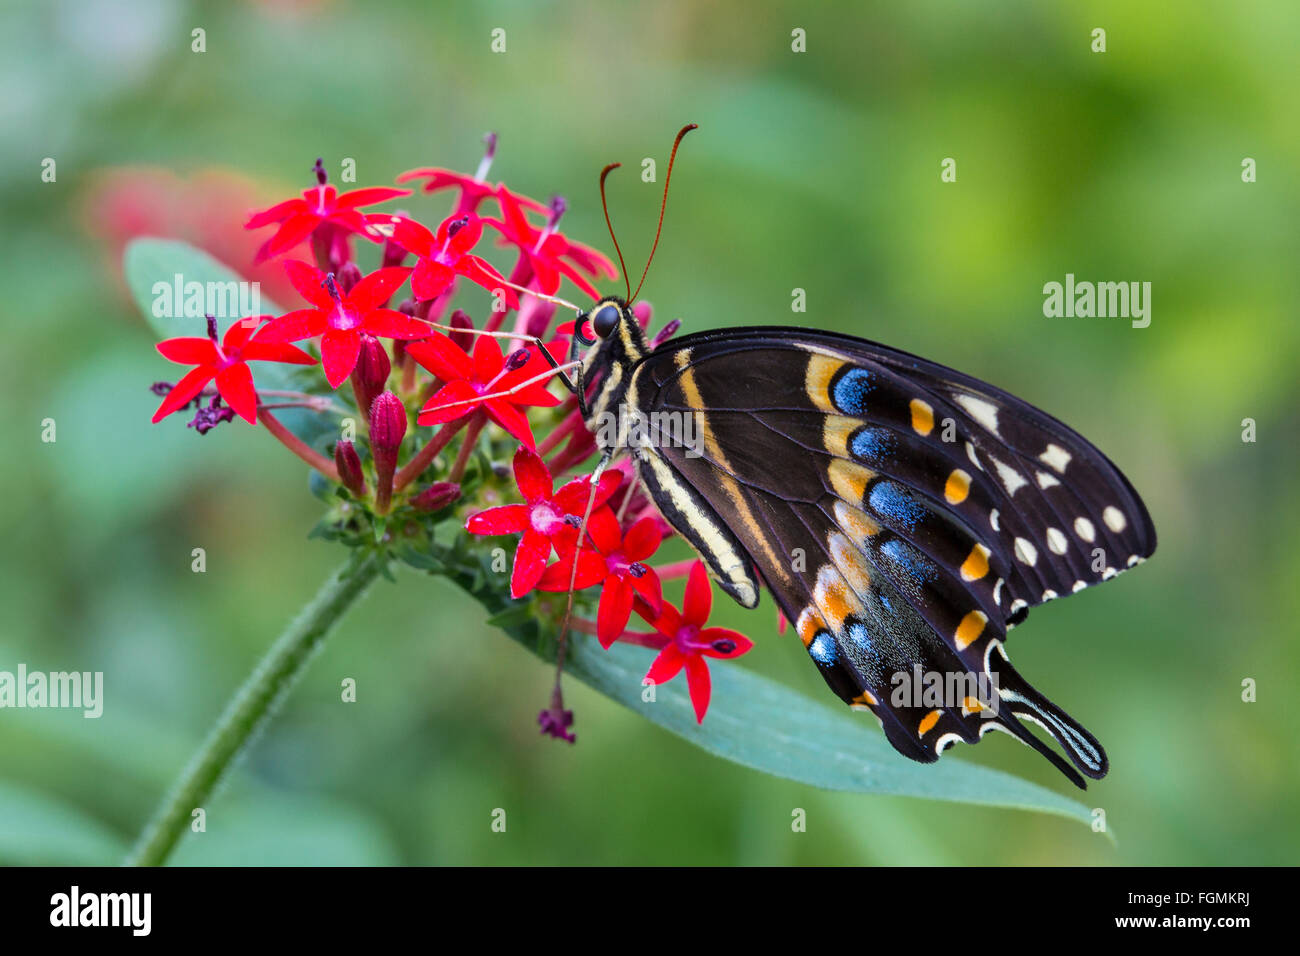 Eastern Black Swallowtail butterfly Papilio polyxenes at The Butterfly Estates in Fort Myers Florida - Stock Image